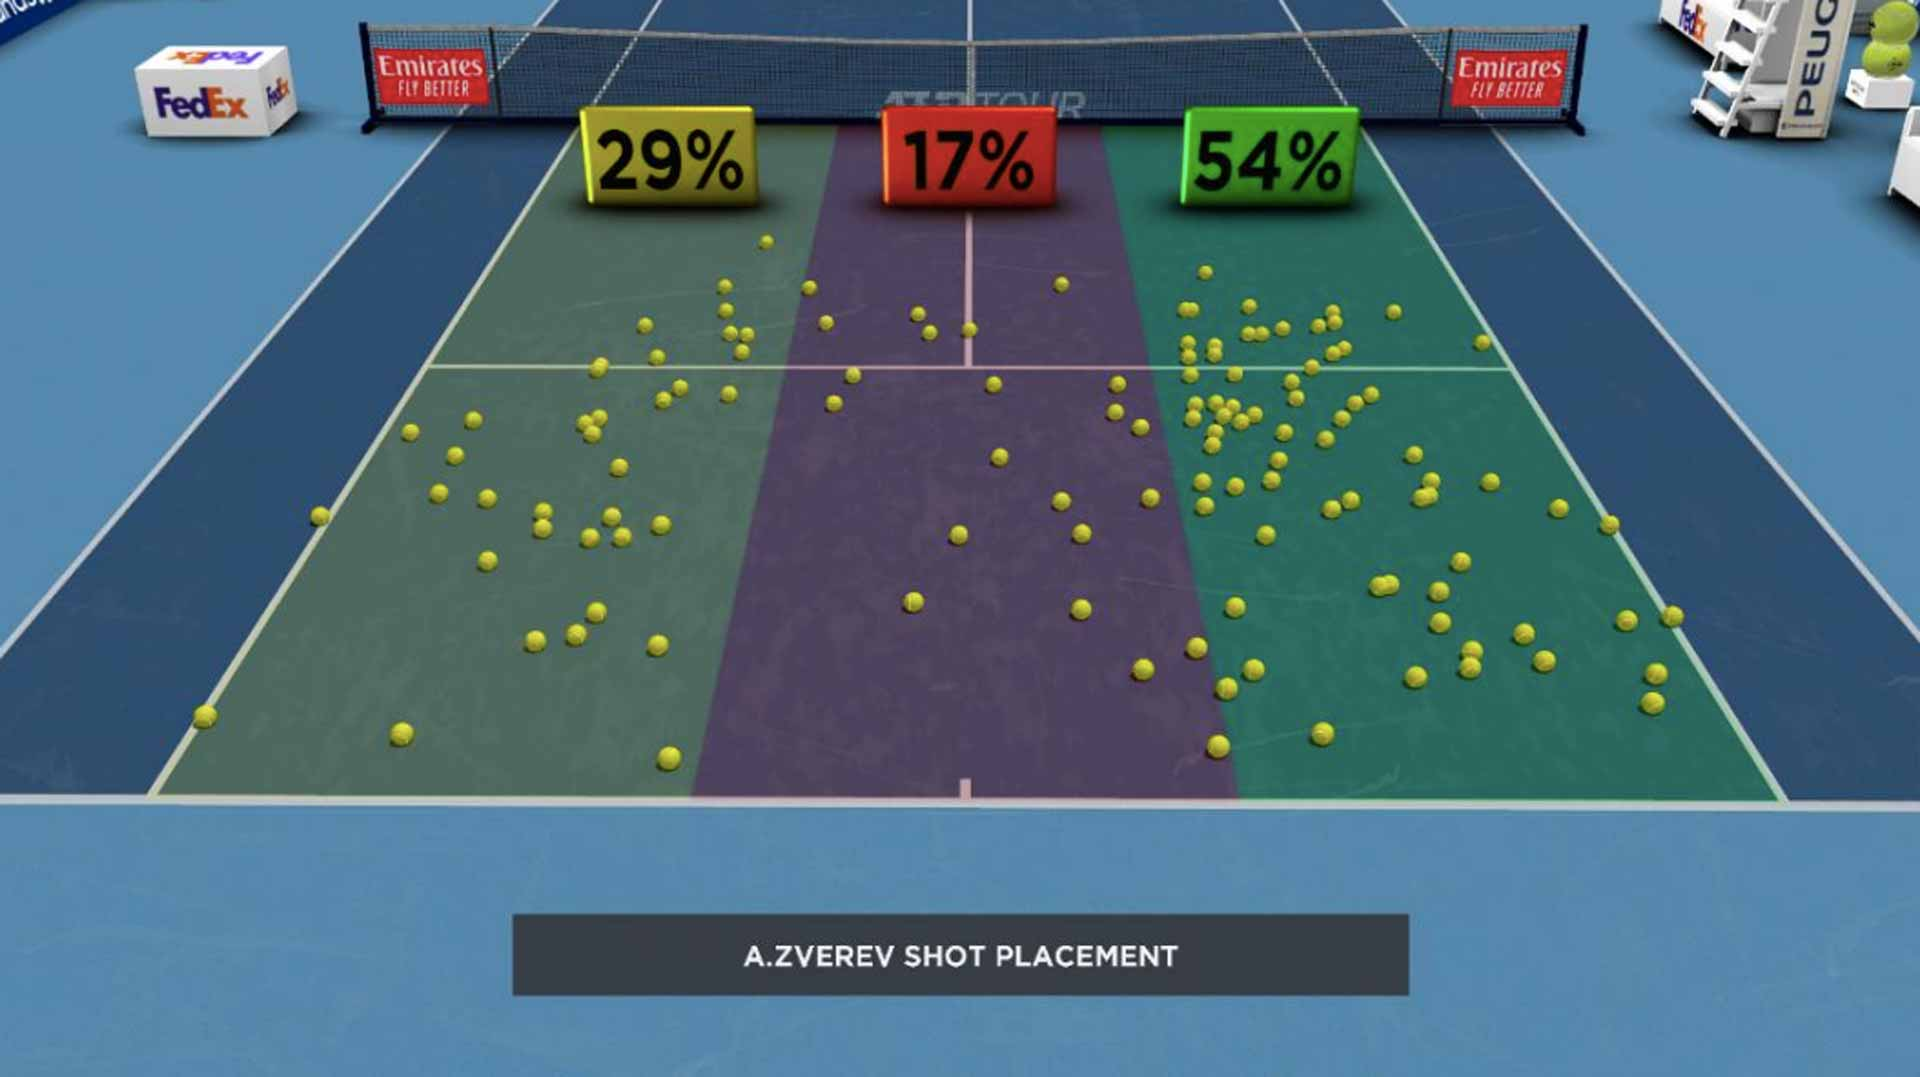 Zverev Shot Placement